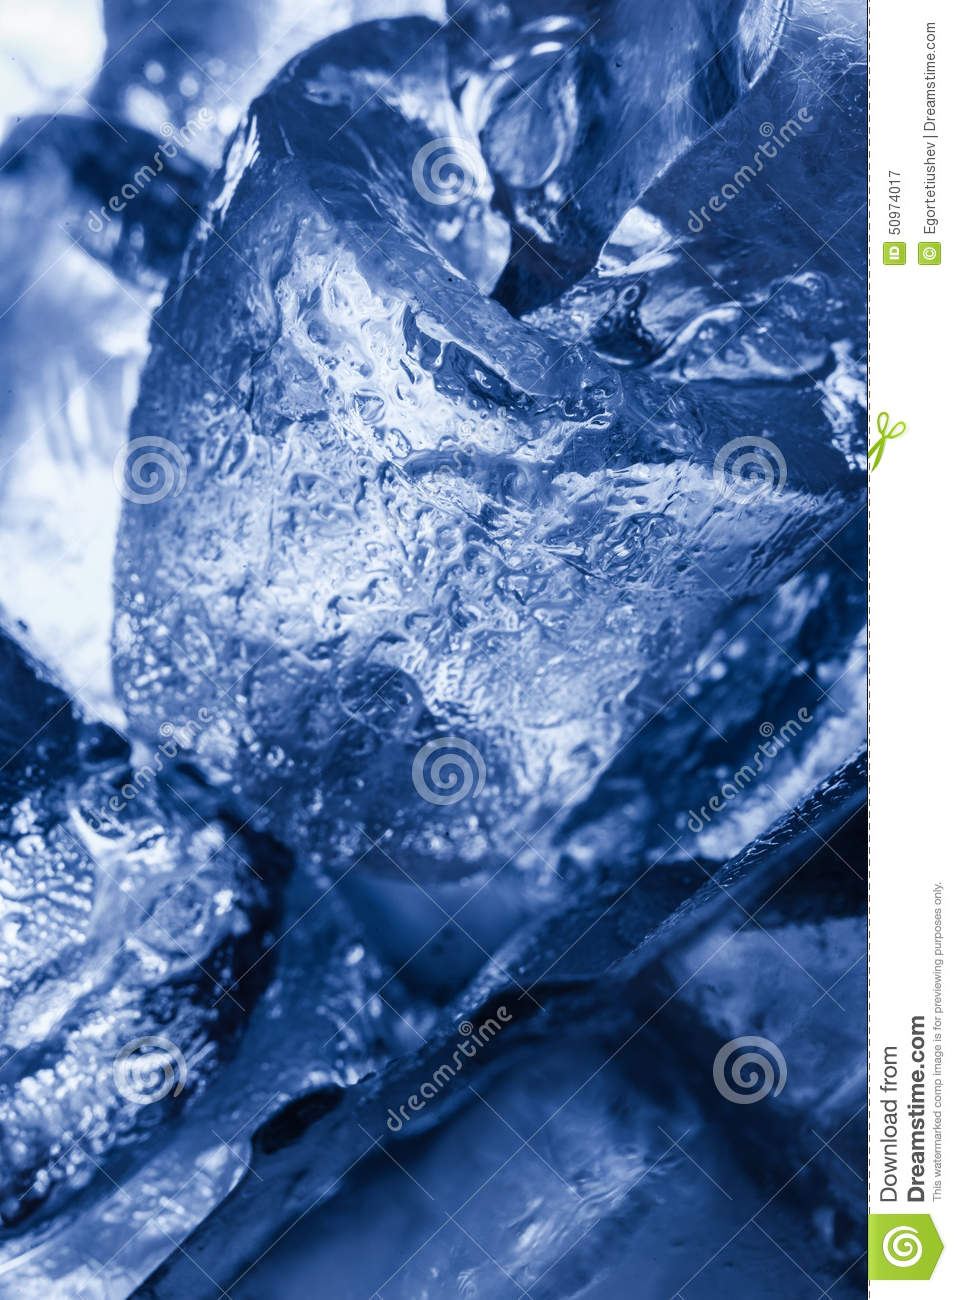 Ice Cubes Texture Stock Photo - Image: 50974017